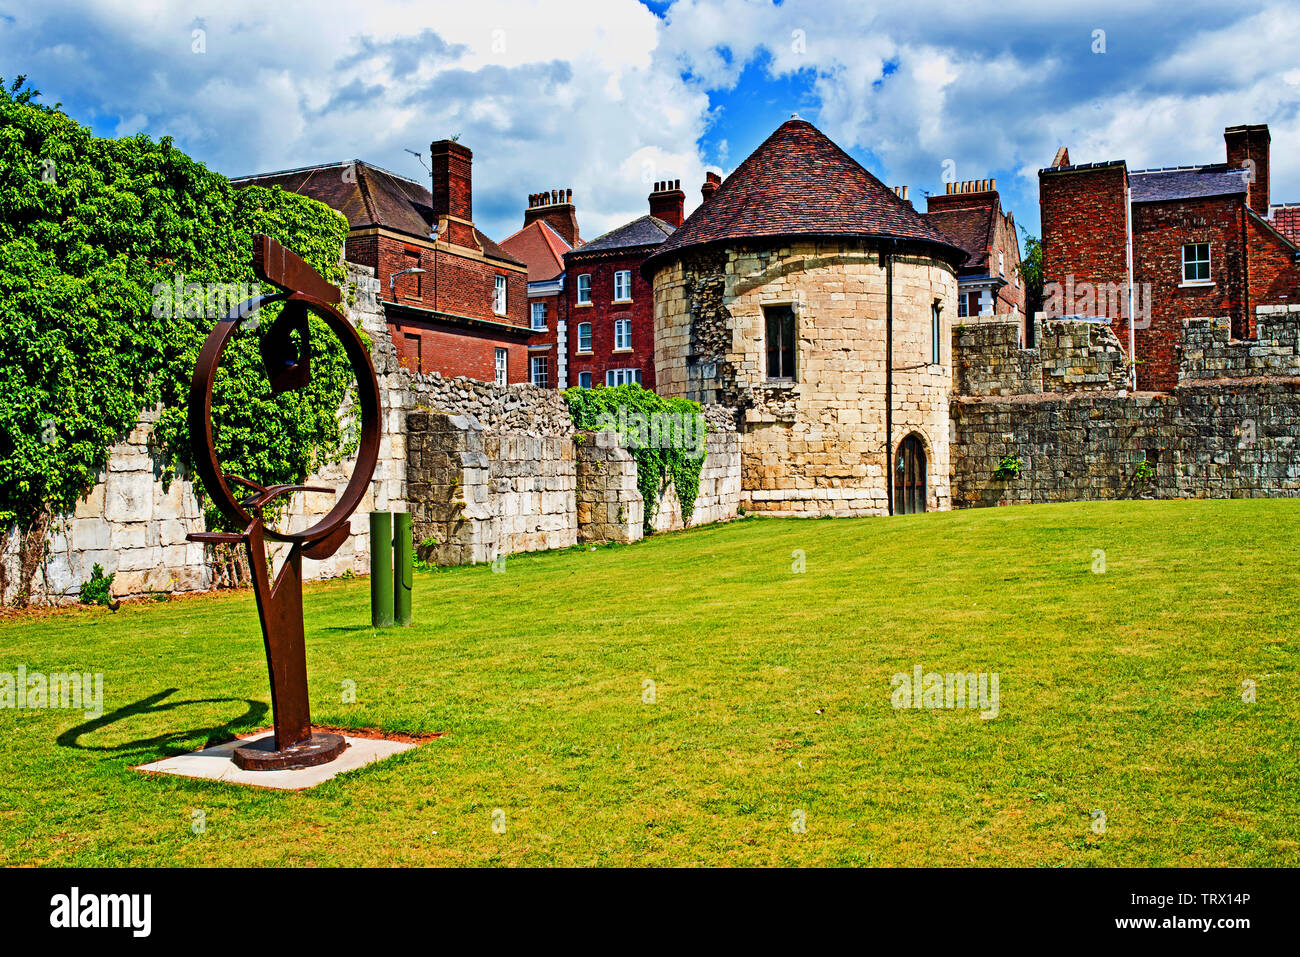 Marygate Tower and sculpture, Marygate, York, England Stock Photo